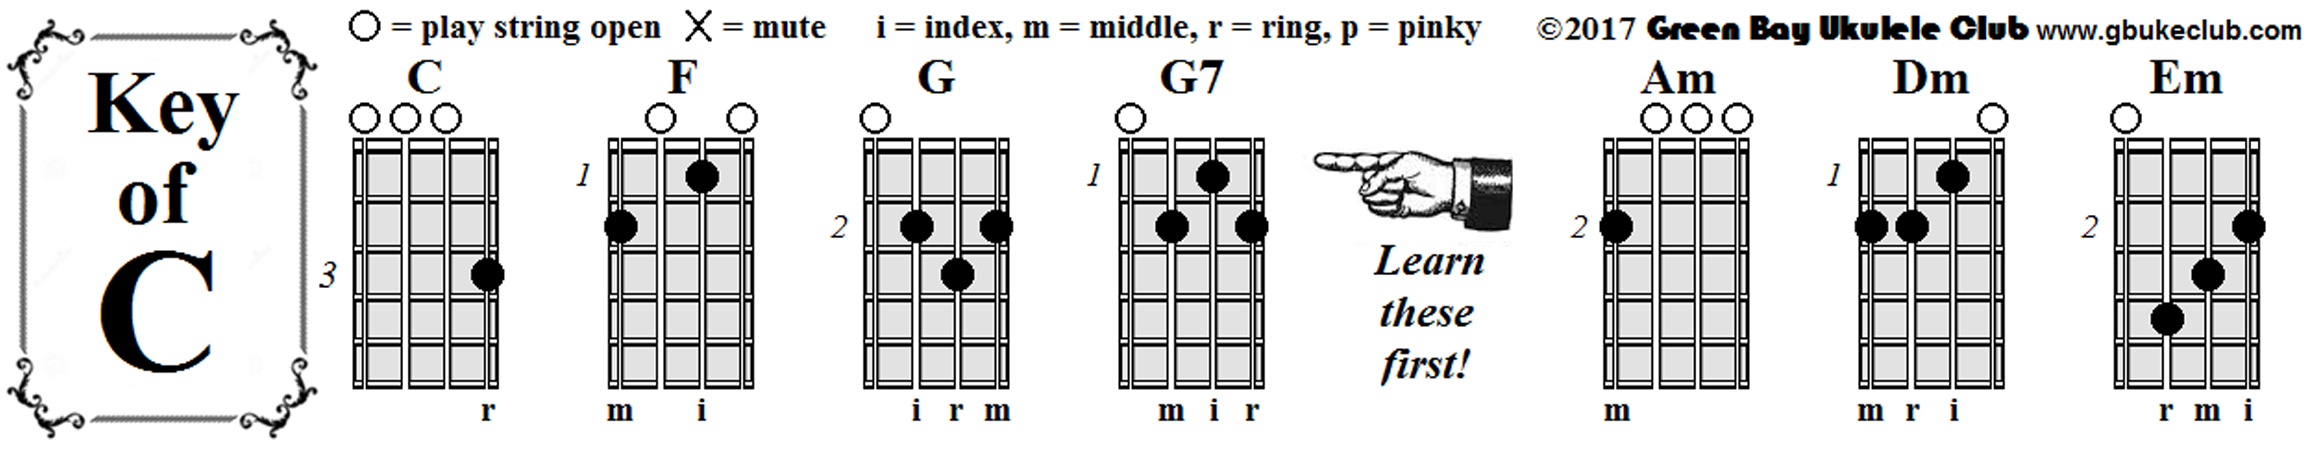 Free, easy-to-play ukulele sheet music downloads for beginners; GB ...